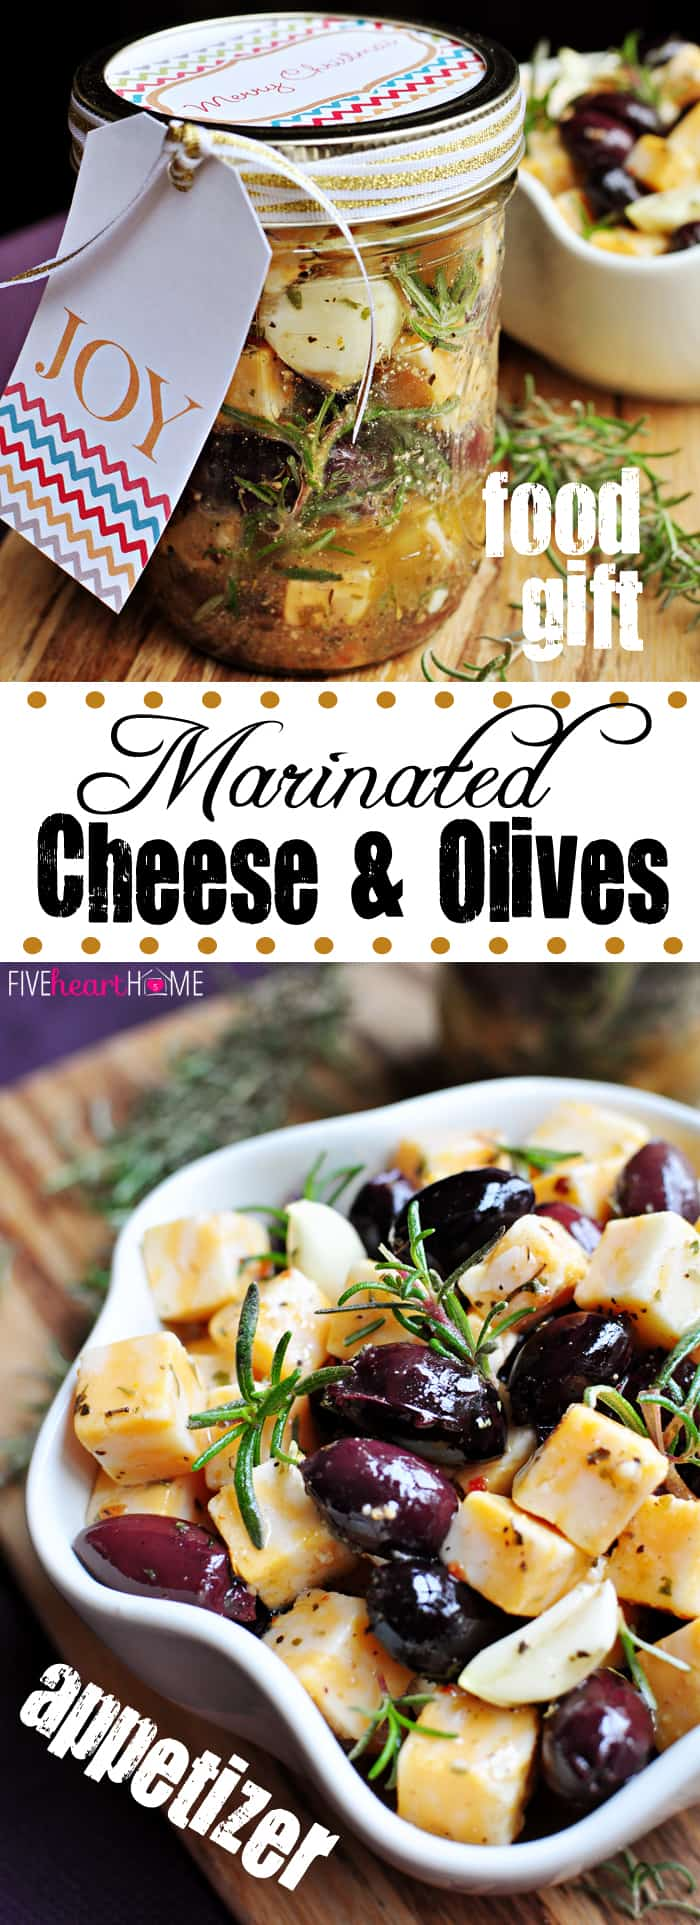 Marinated Cheese & Olives come together in a herb- and garlic-infused dressing for a quick, attractive appetizer or a fun and easy food gift in a jar! | fivehearthome.com